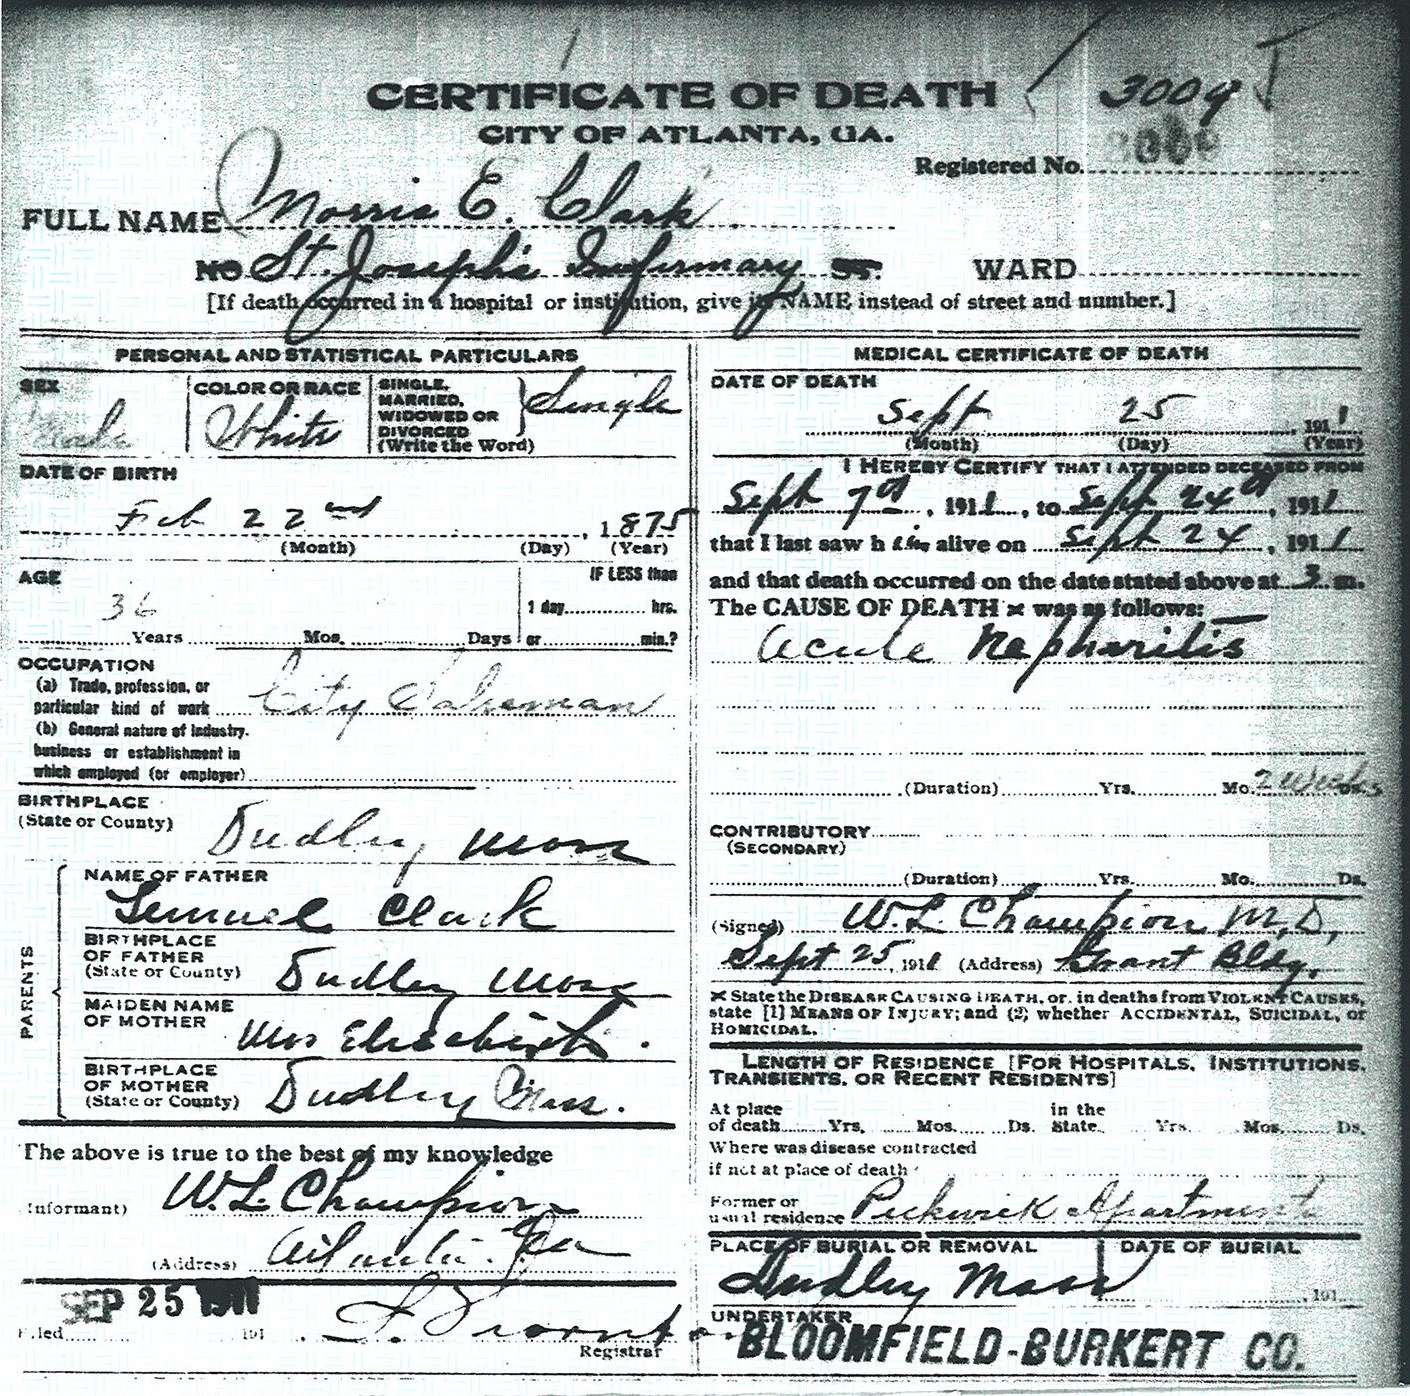 Finding uncle morris vita brevis death certificate for morris e clark city of atlanta death certificate 3009 aiddatafo Image collections